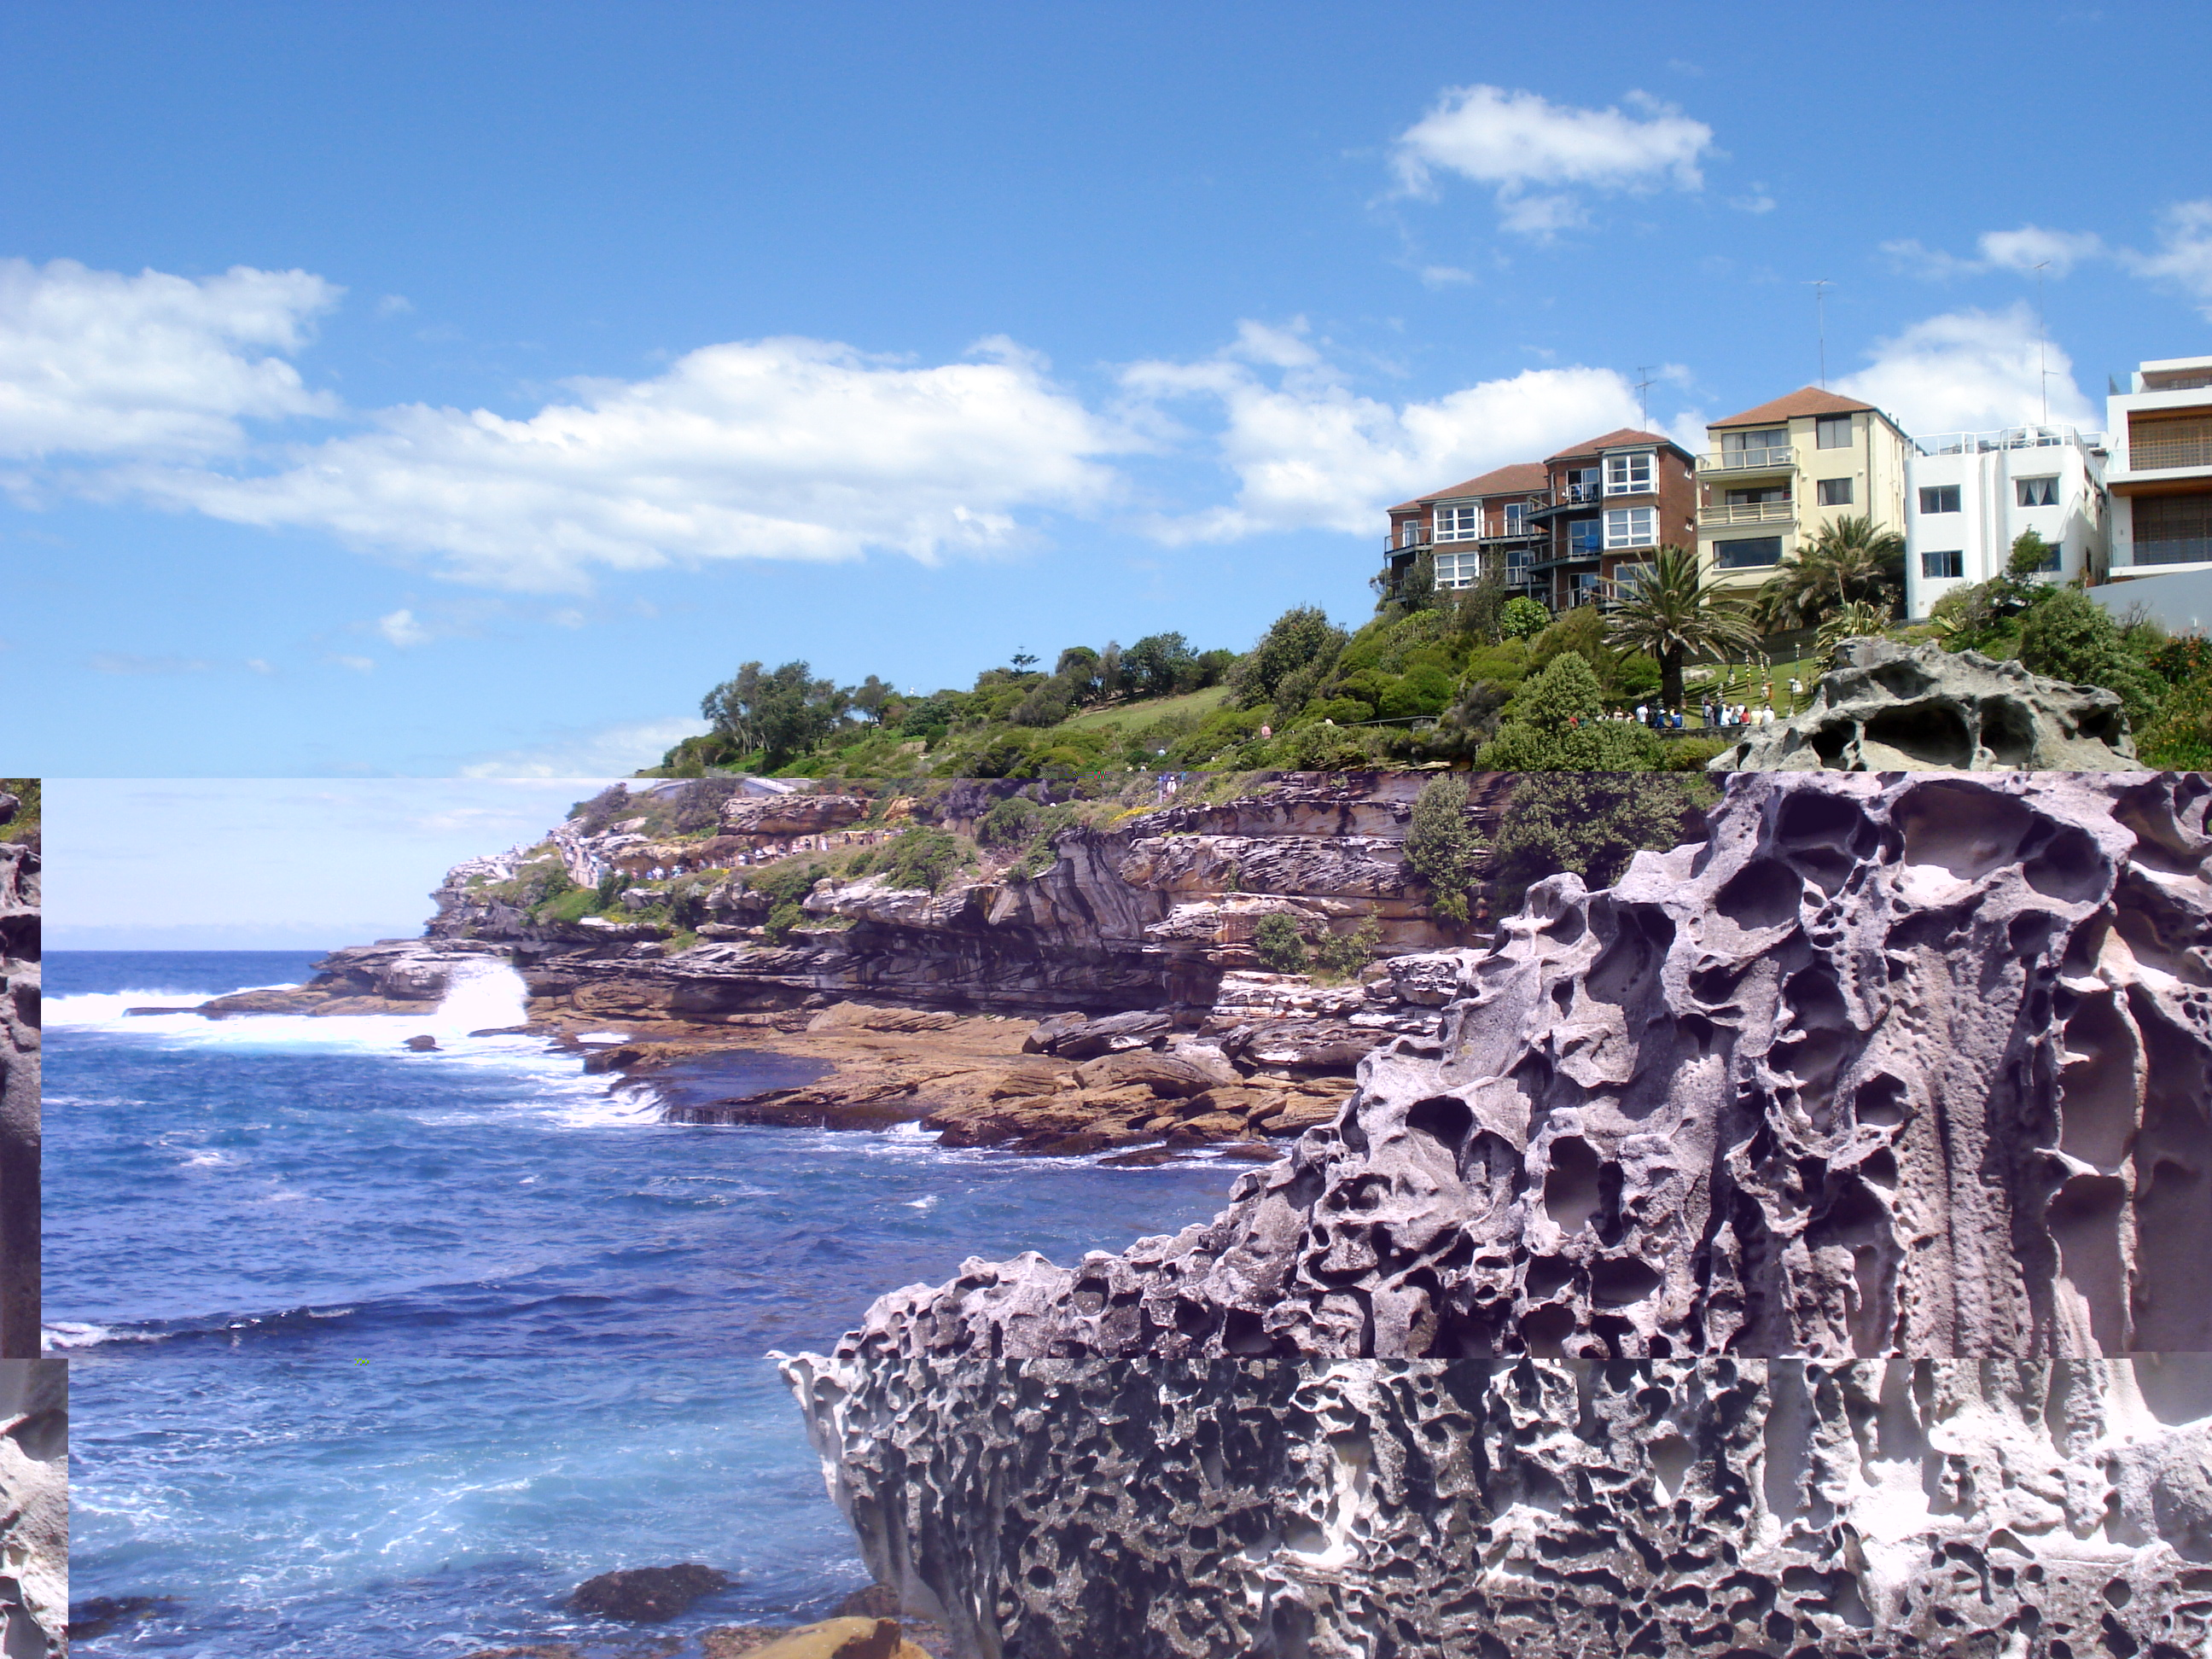 Bondi-Coogee cliffside walk during stuvac